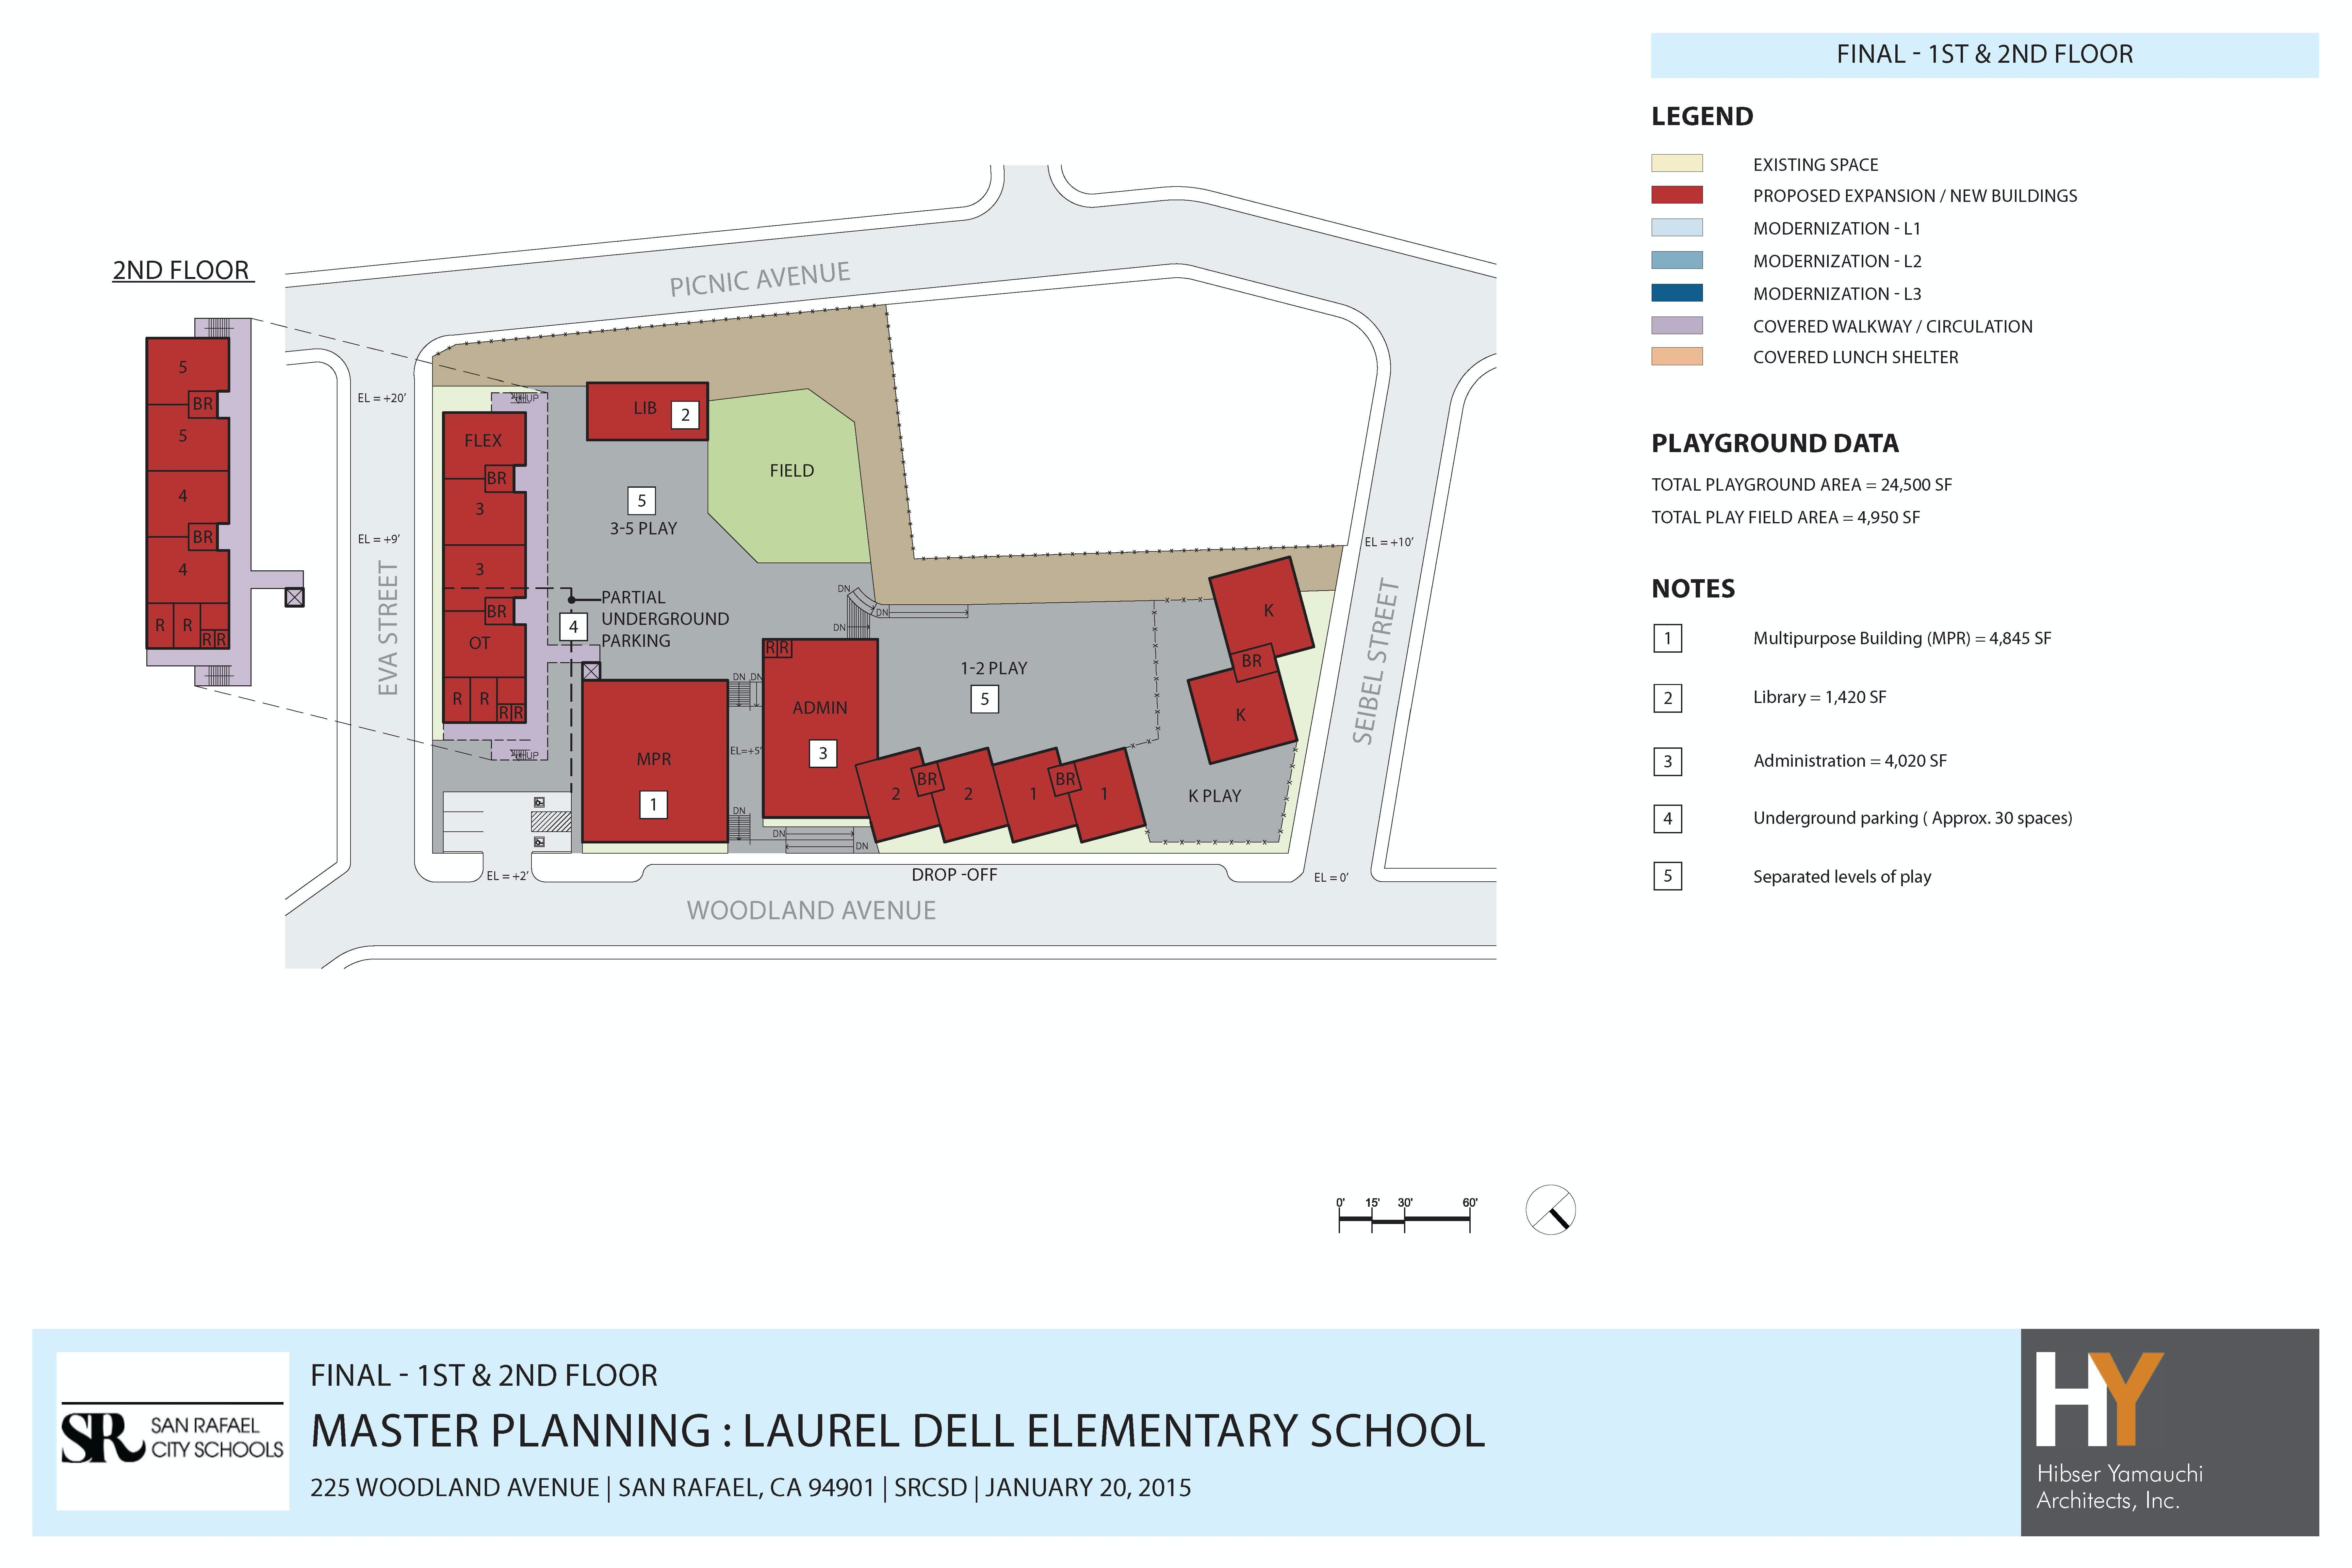 150211 laurel dell es master plan options final page 2